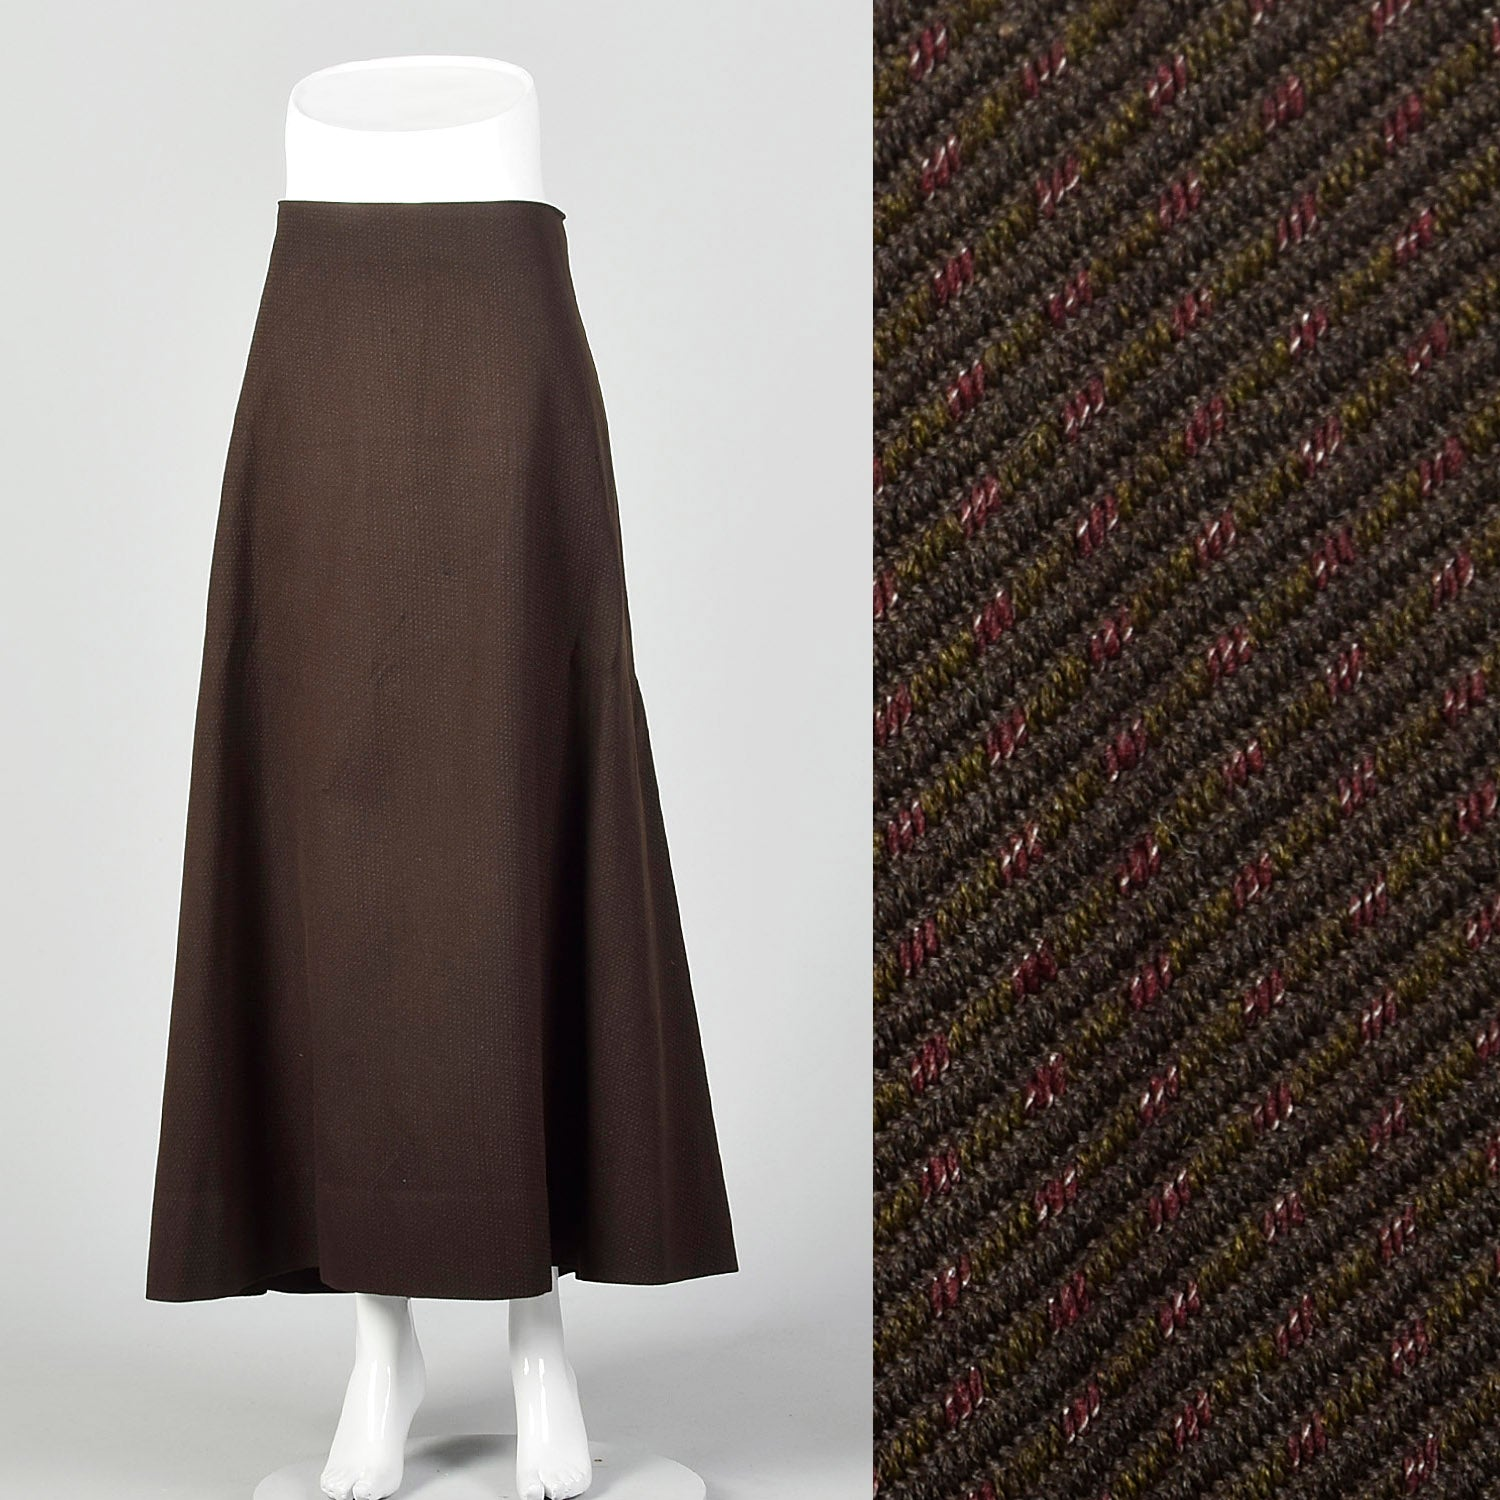 XXL 1910s Brown and Black Striped Skirt